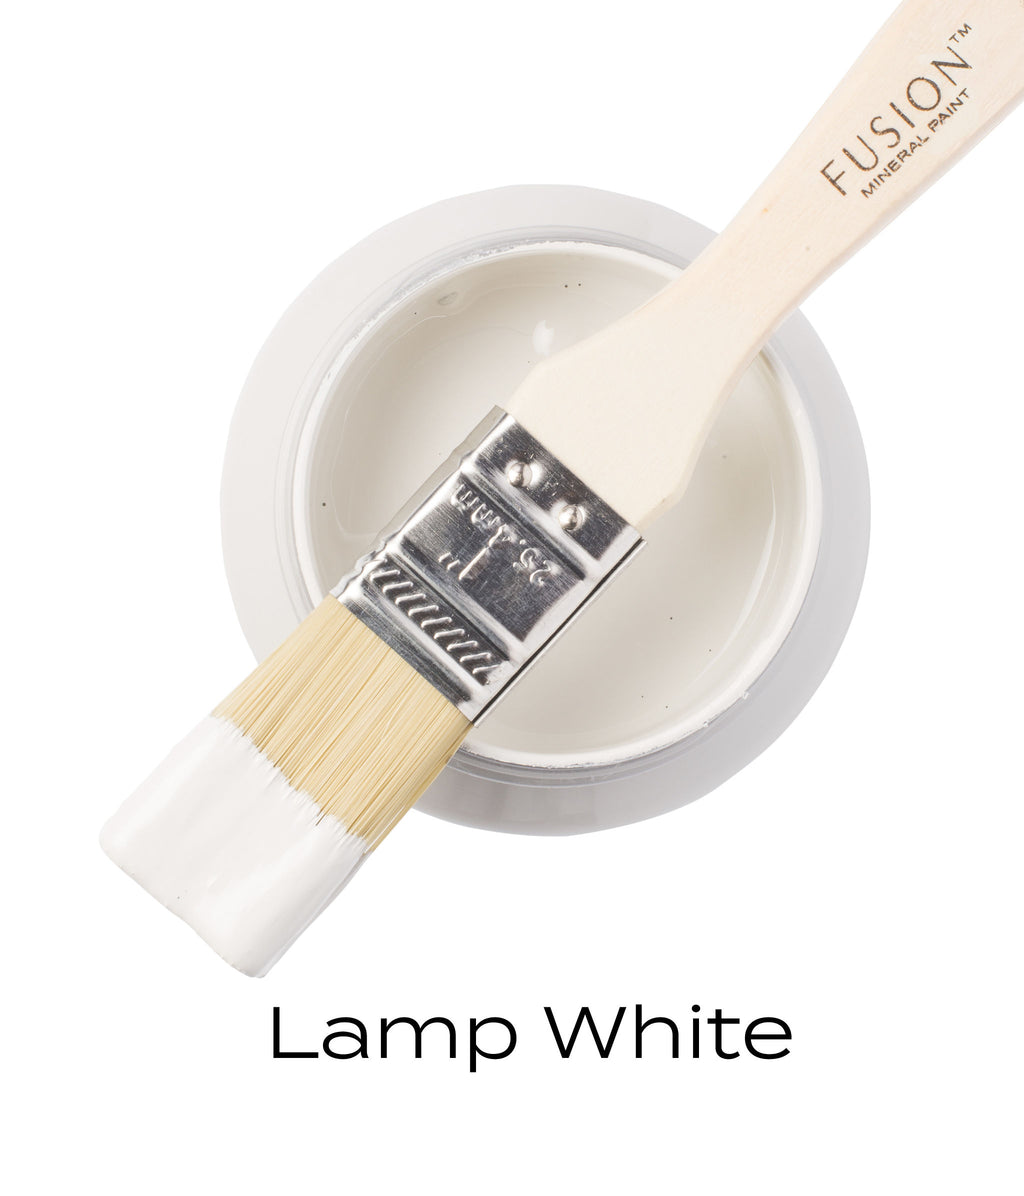 Lamp White Fusion Mineral Paint Near Me